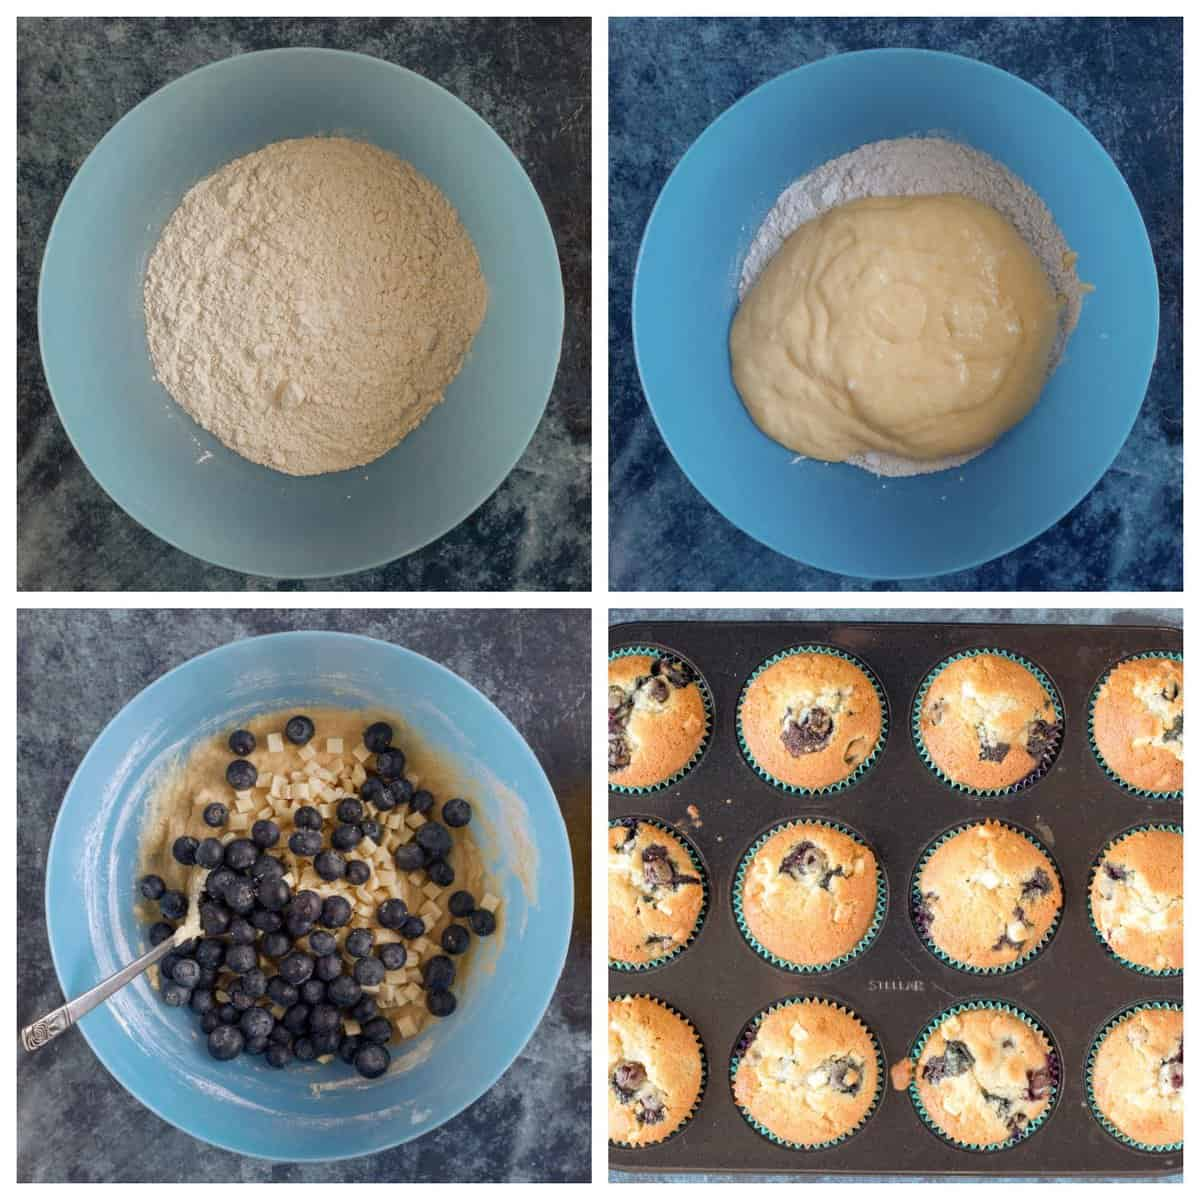 Step by step photo instructions for making the muffins.